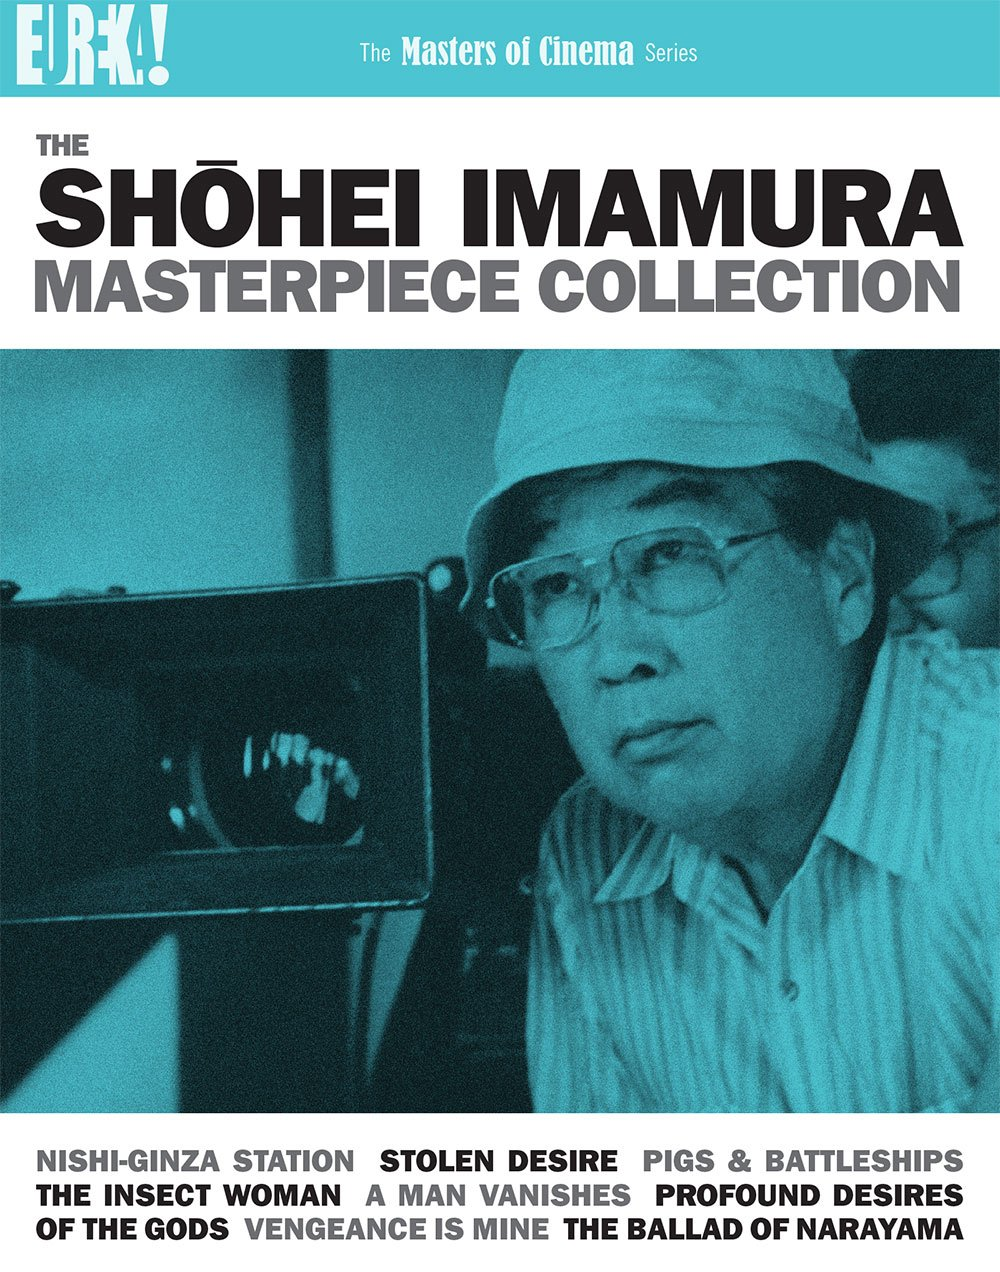 The Shoehei Imamura Masterpiece Collection